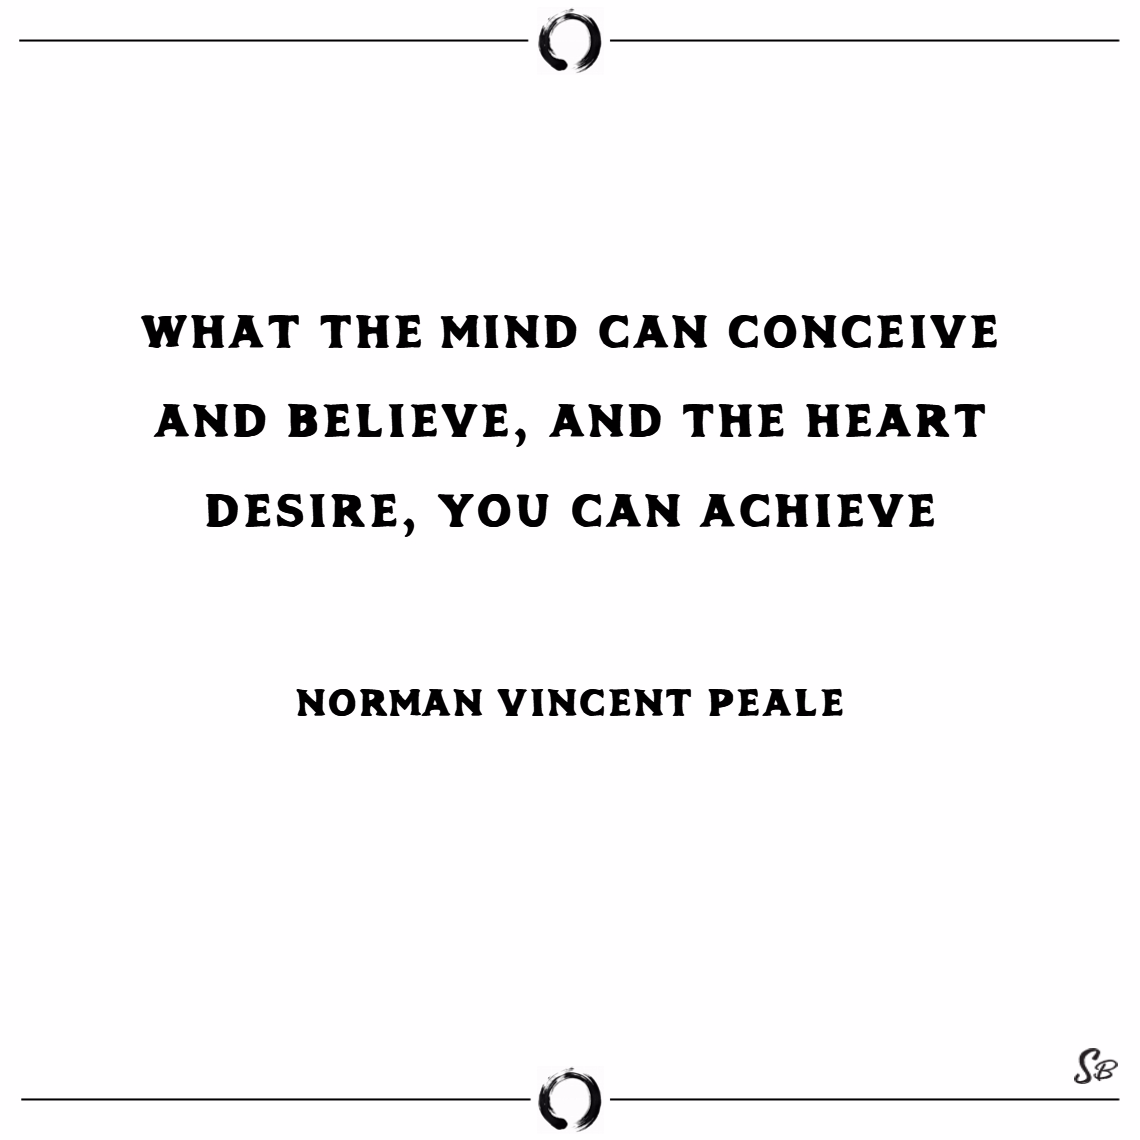 What the mind can conceive and believe, and the heart desire, you can achieve. – norman vincent peale